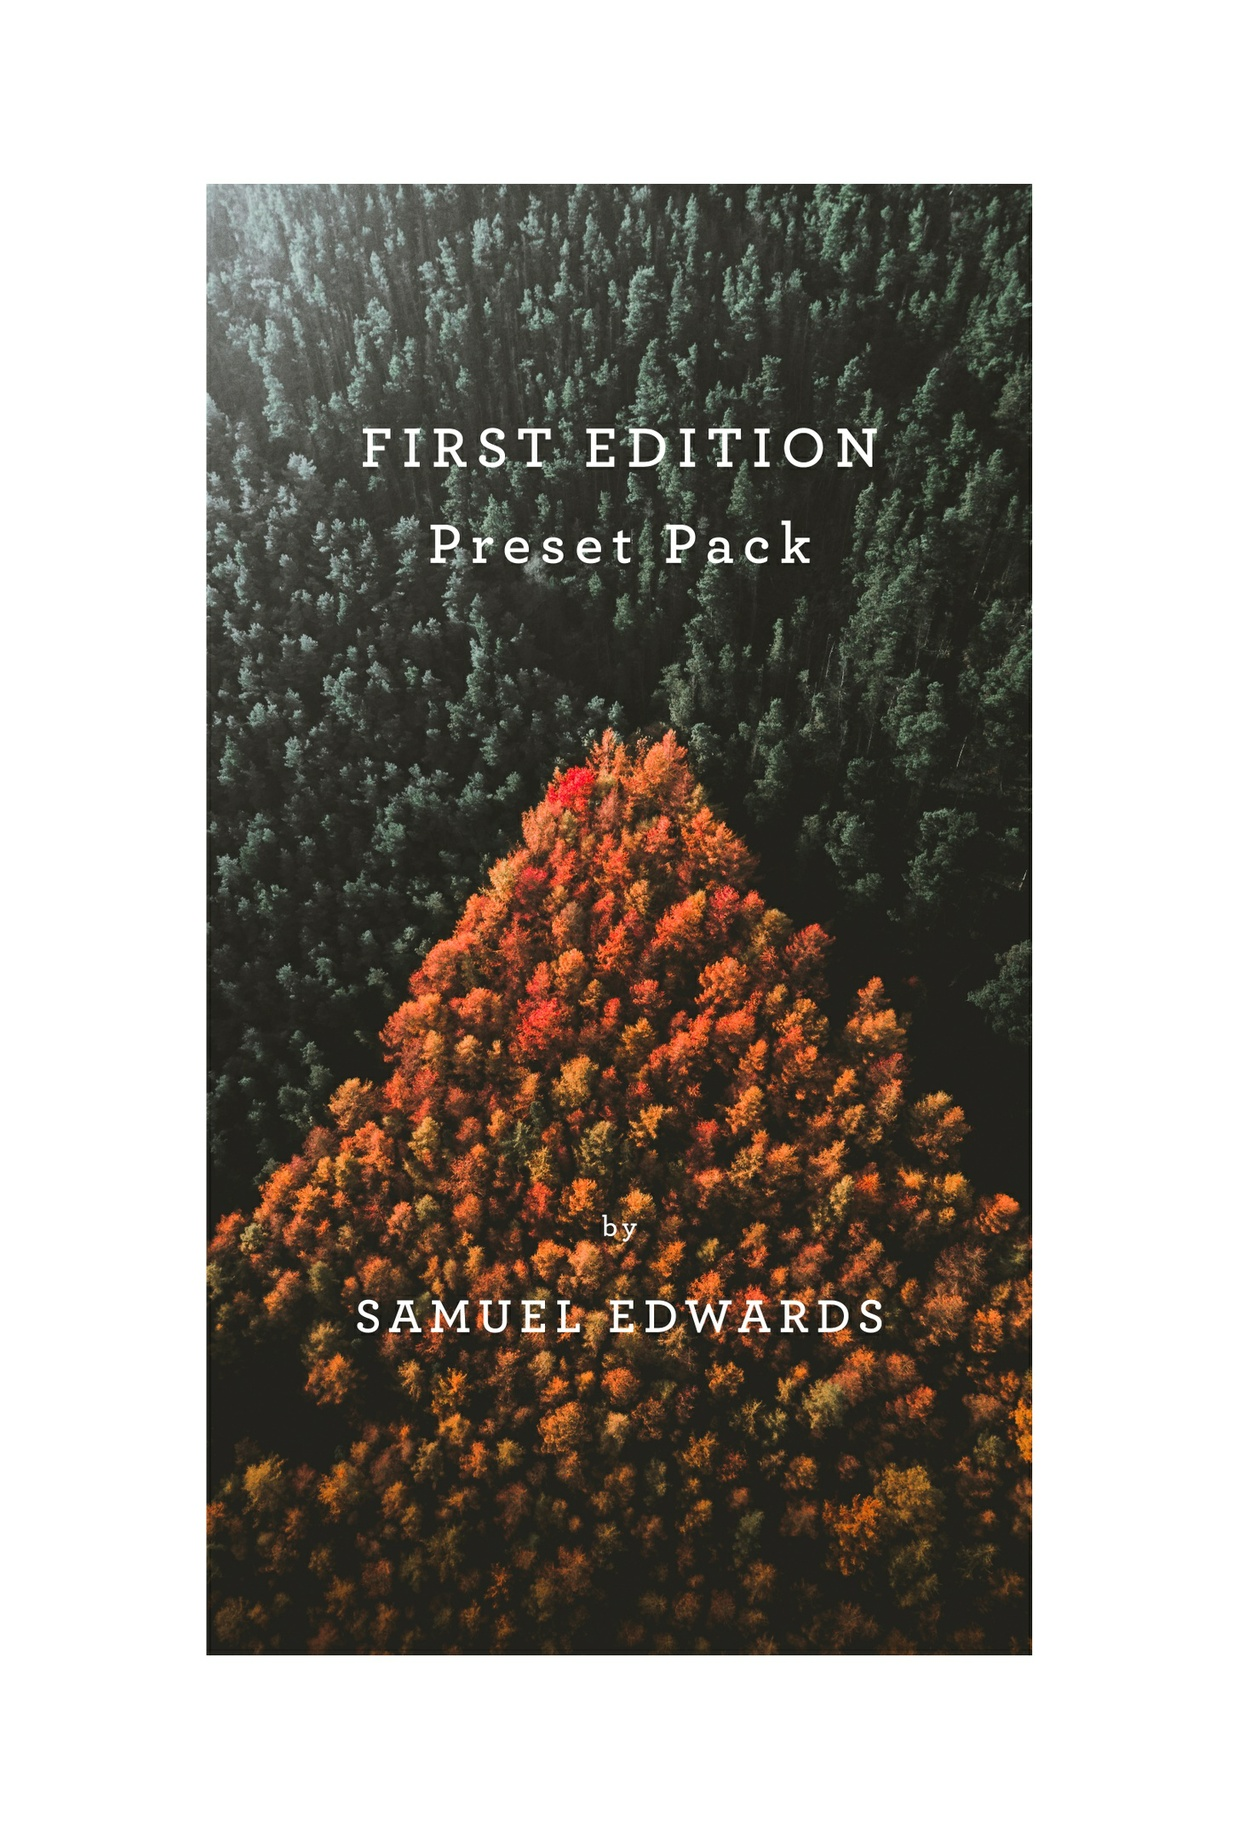 Preset Pack: First Edition - by Samuel Edwards